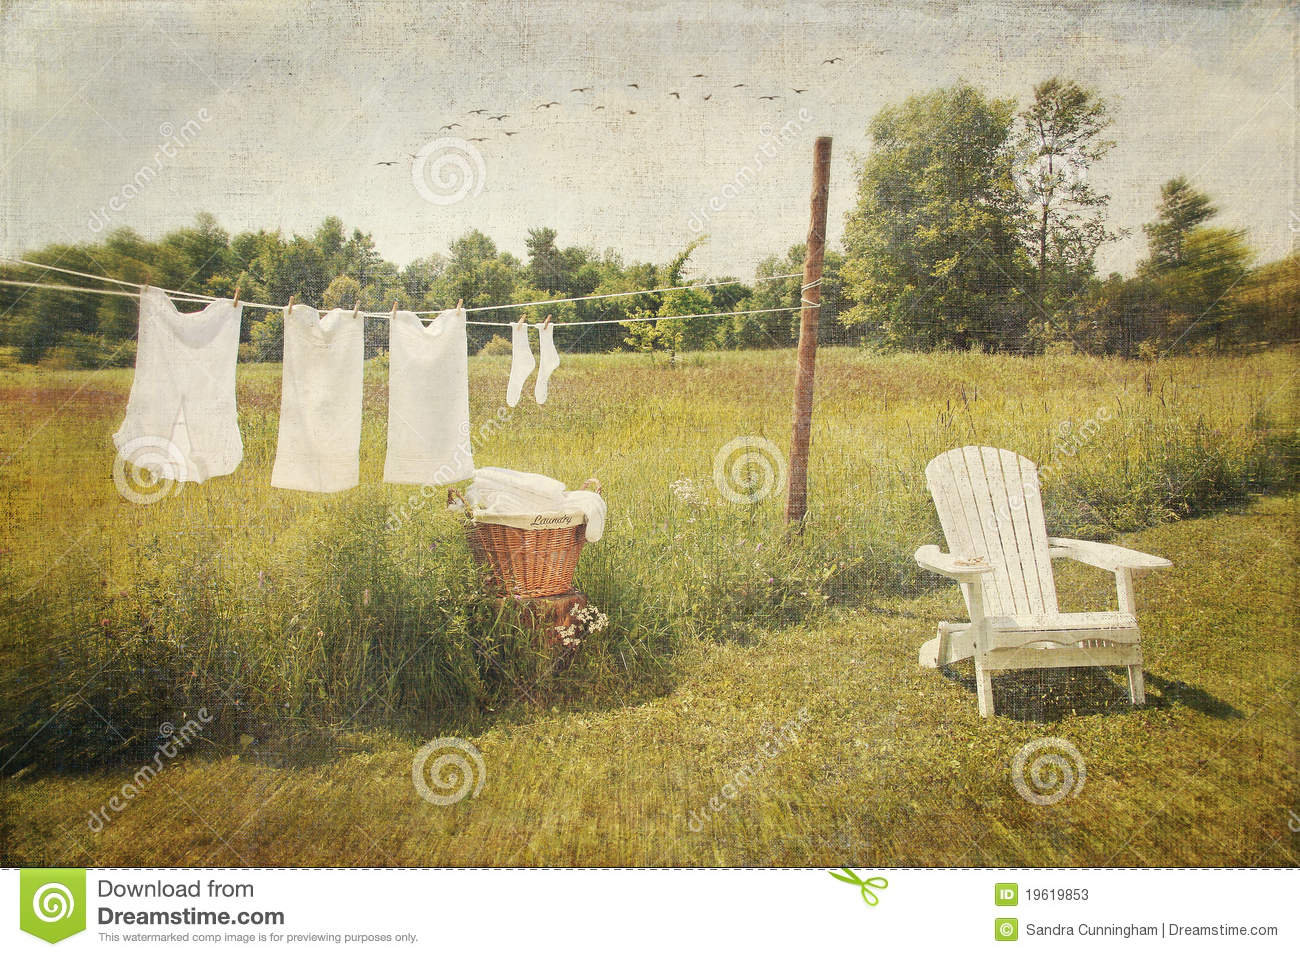 Clothes Drying On A Clothesline ~ White cotton clothes drying on a wash line stock image